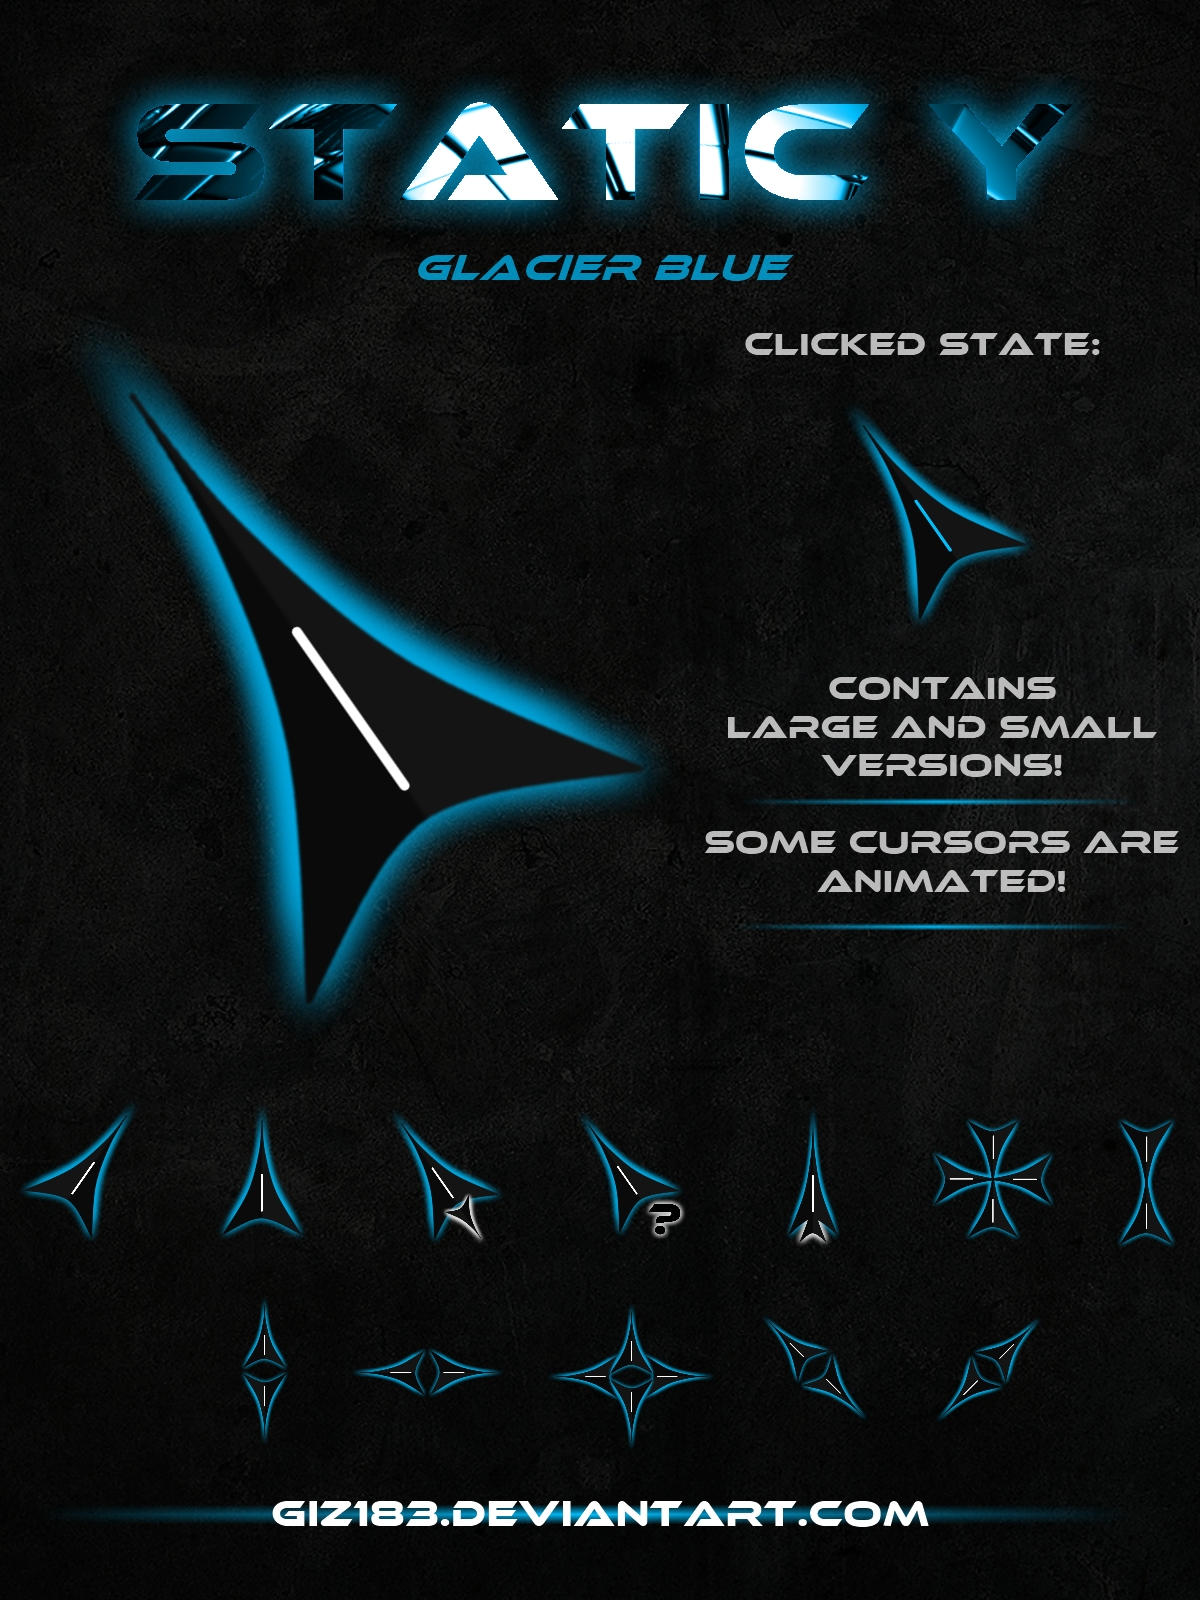 Static Y Glacier Blue By Giz183 On Deviantart